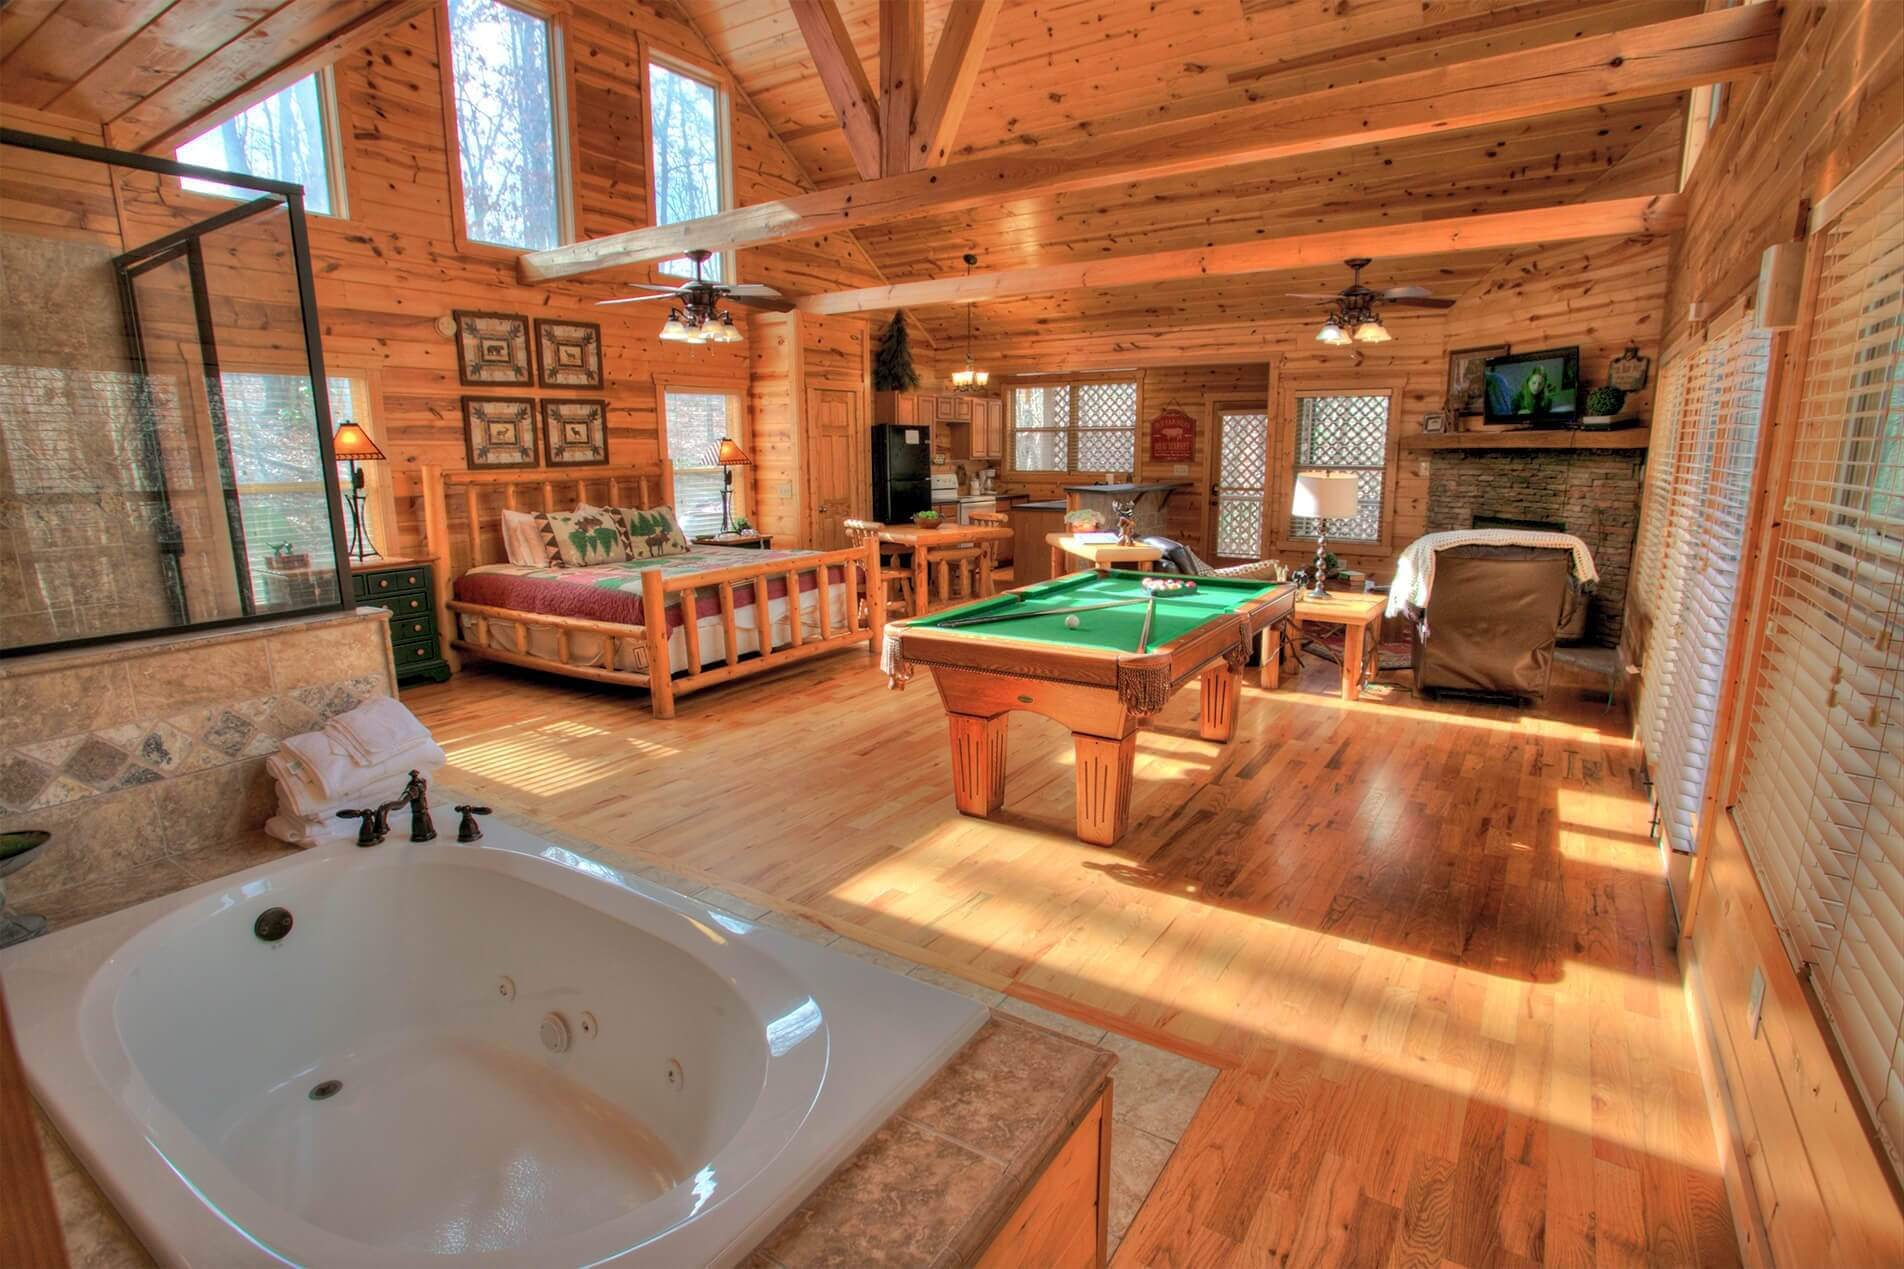 Cabin Getaway For Couples Escape